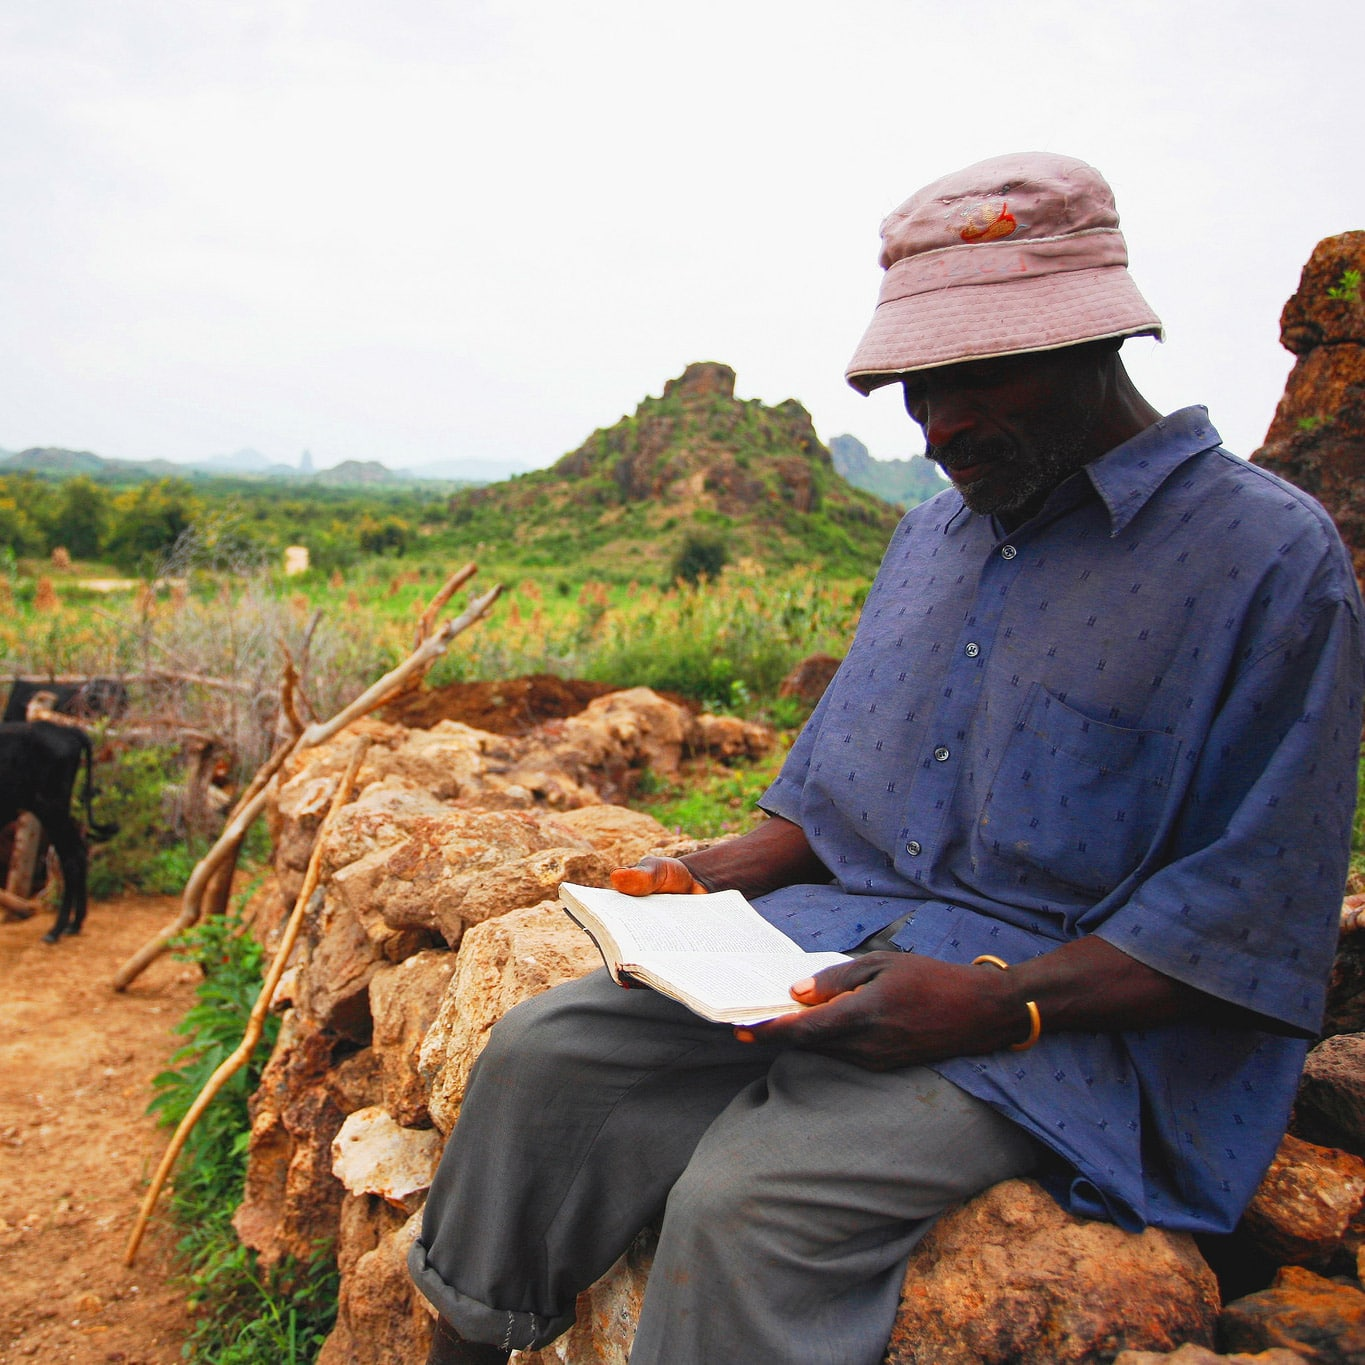 A shepherd in Cameroon reads his Bible